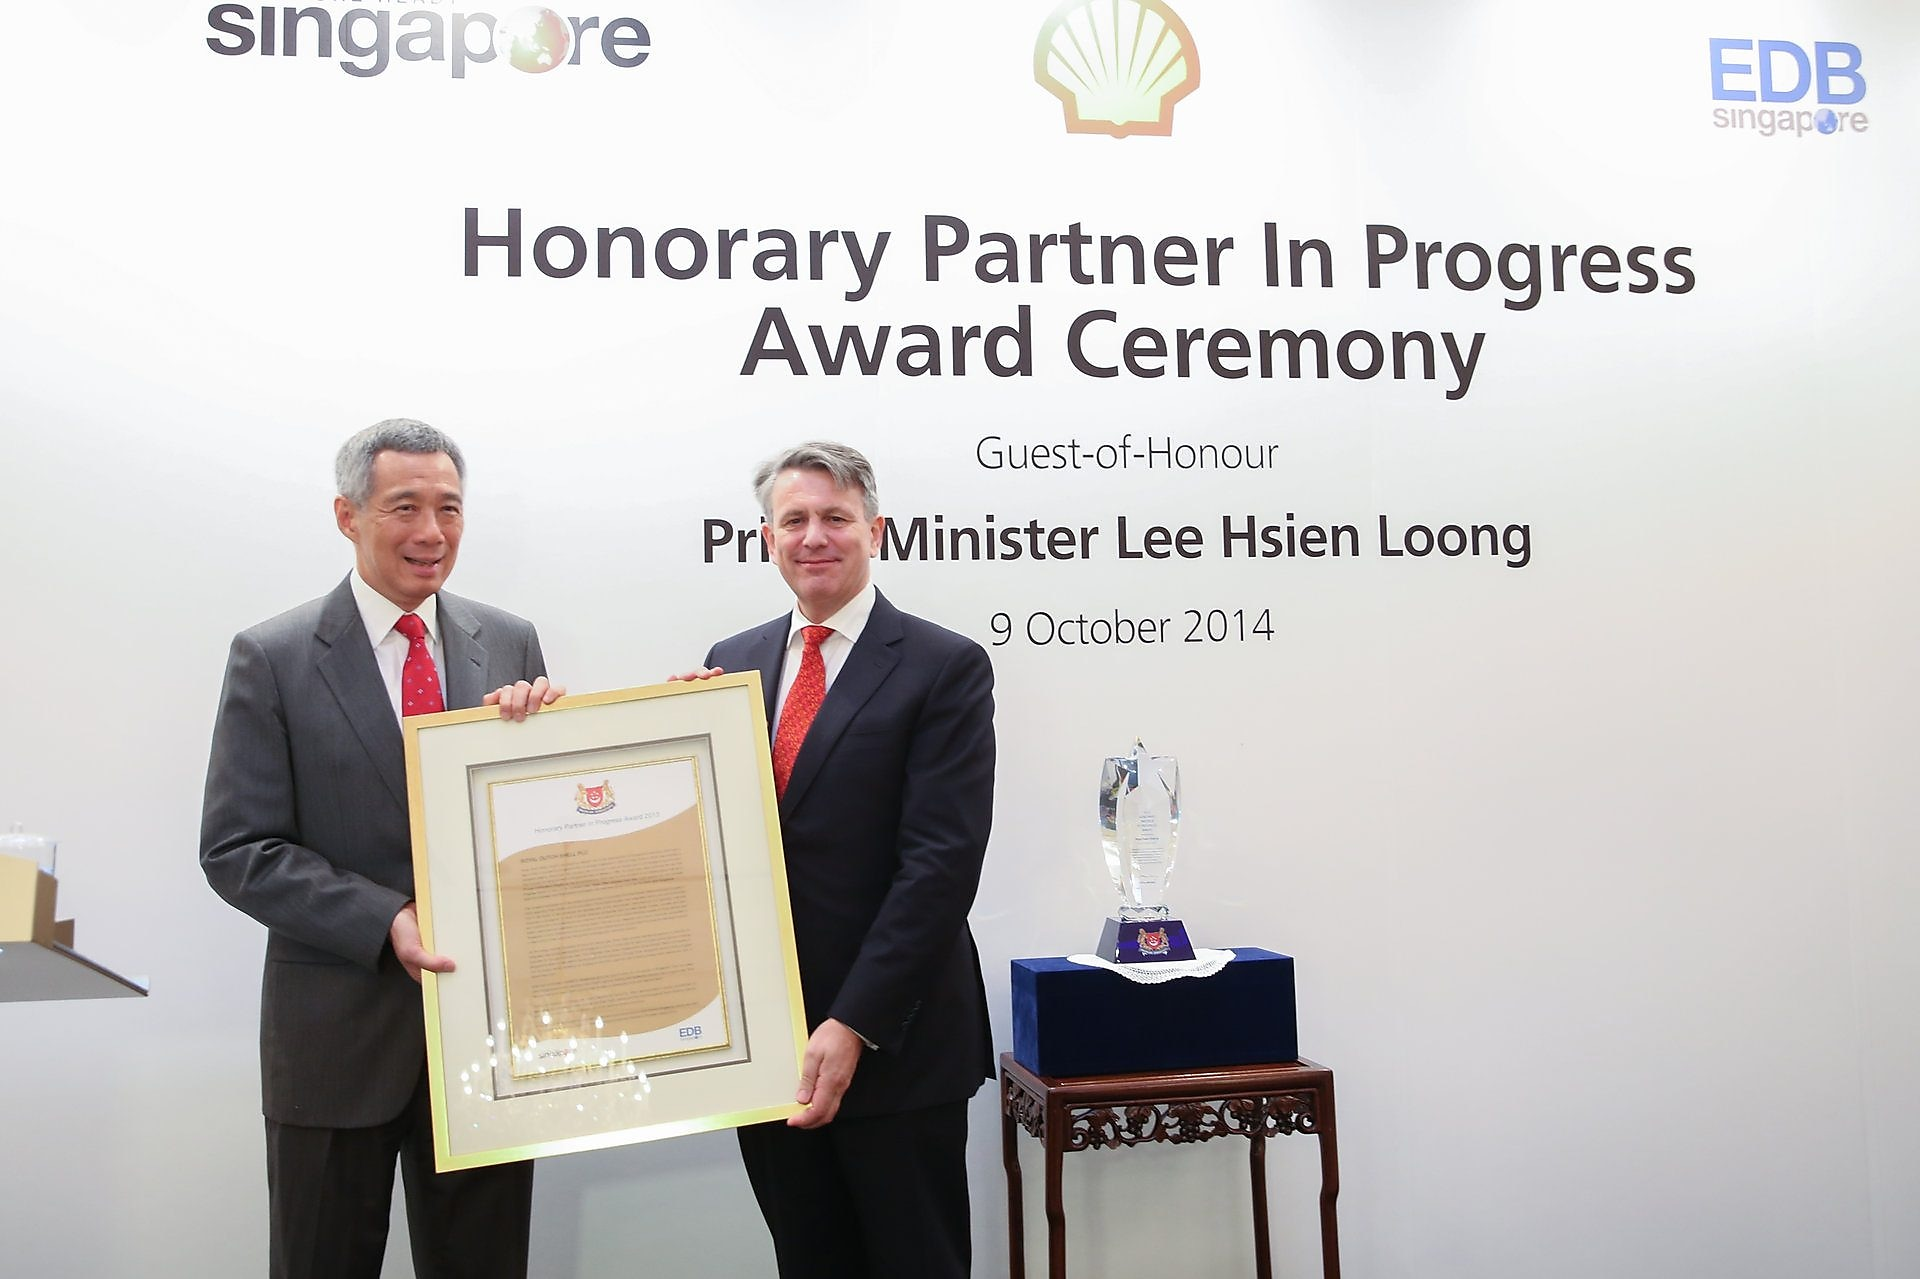 Shell Chief Executive Ben van Beurden receives the Honorary Partner in Progress award from Singapore Prime Minister Lee Hsien Loong.